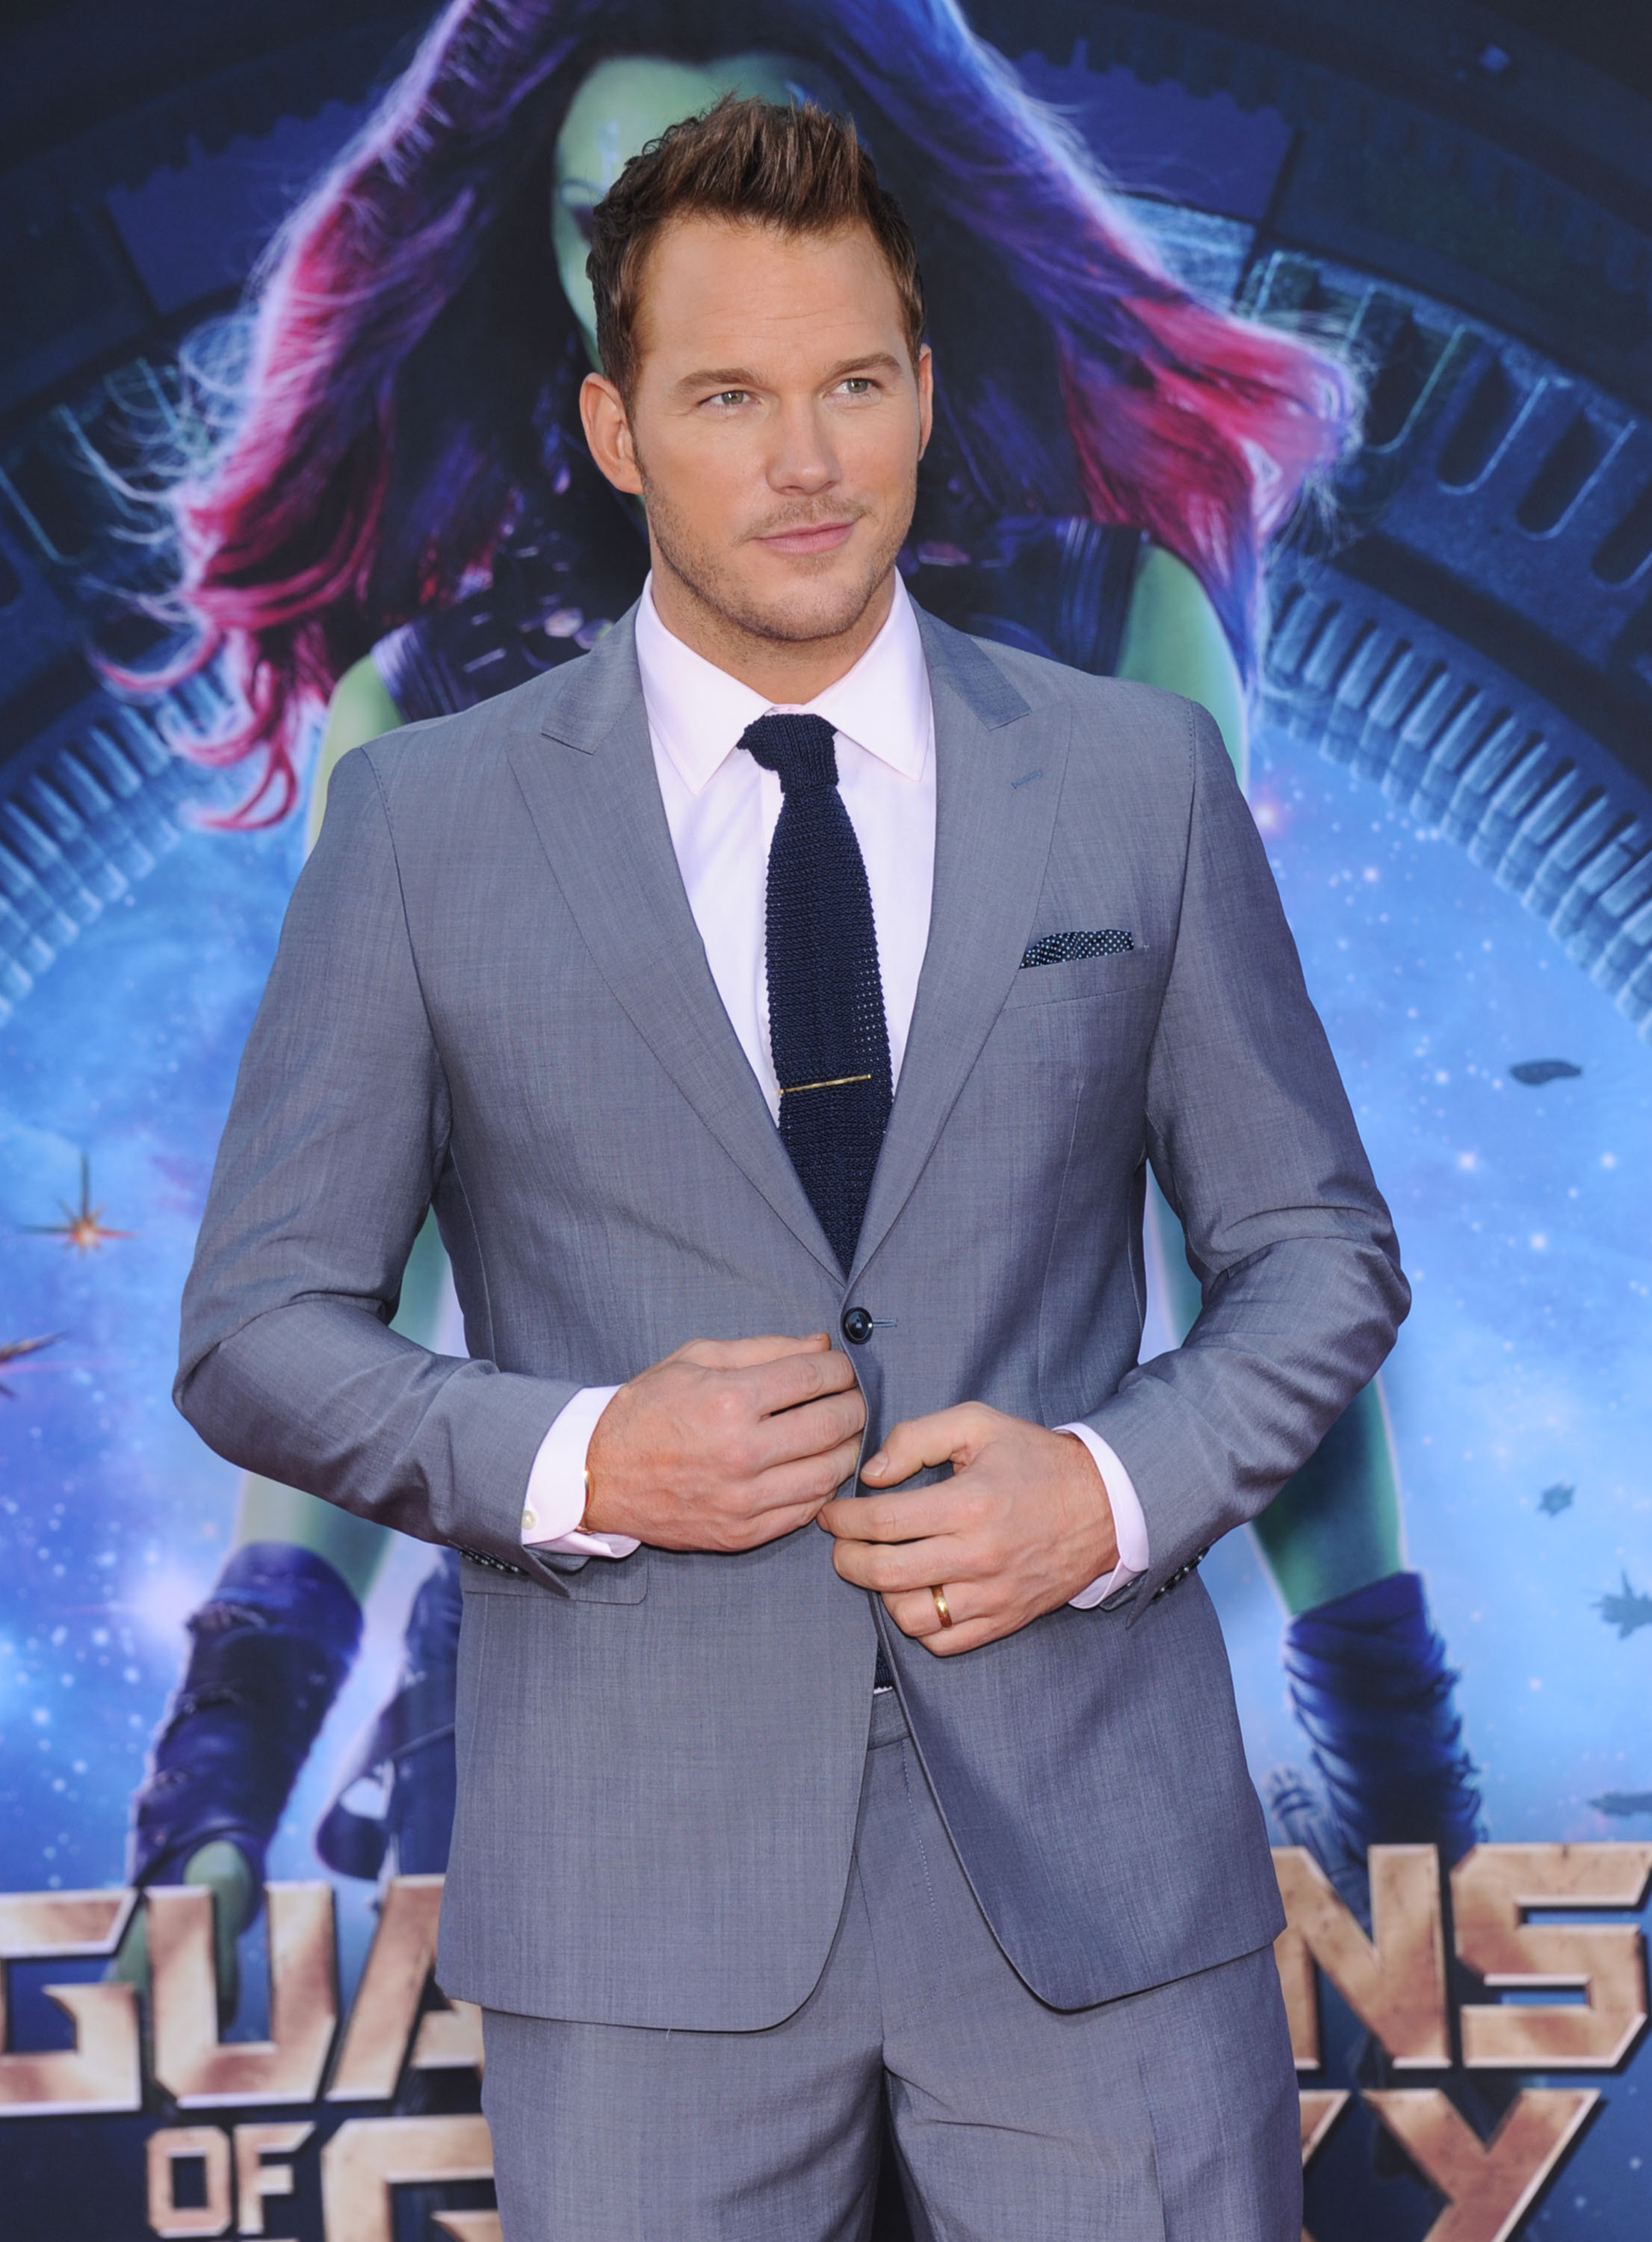 2. Chris Pratt